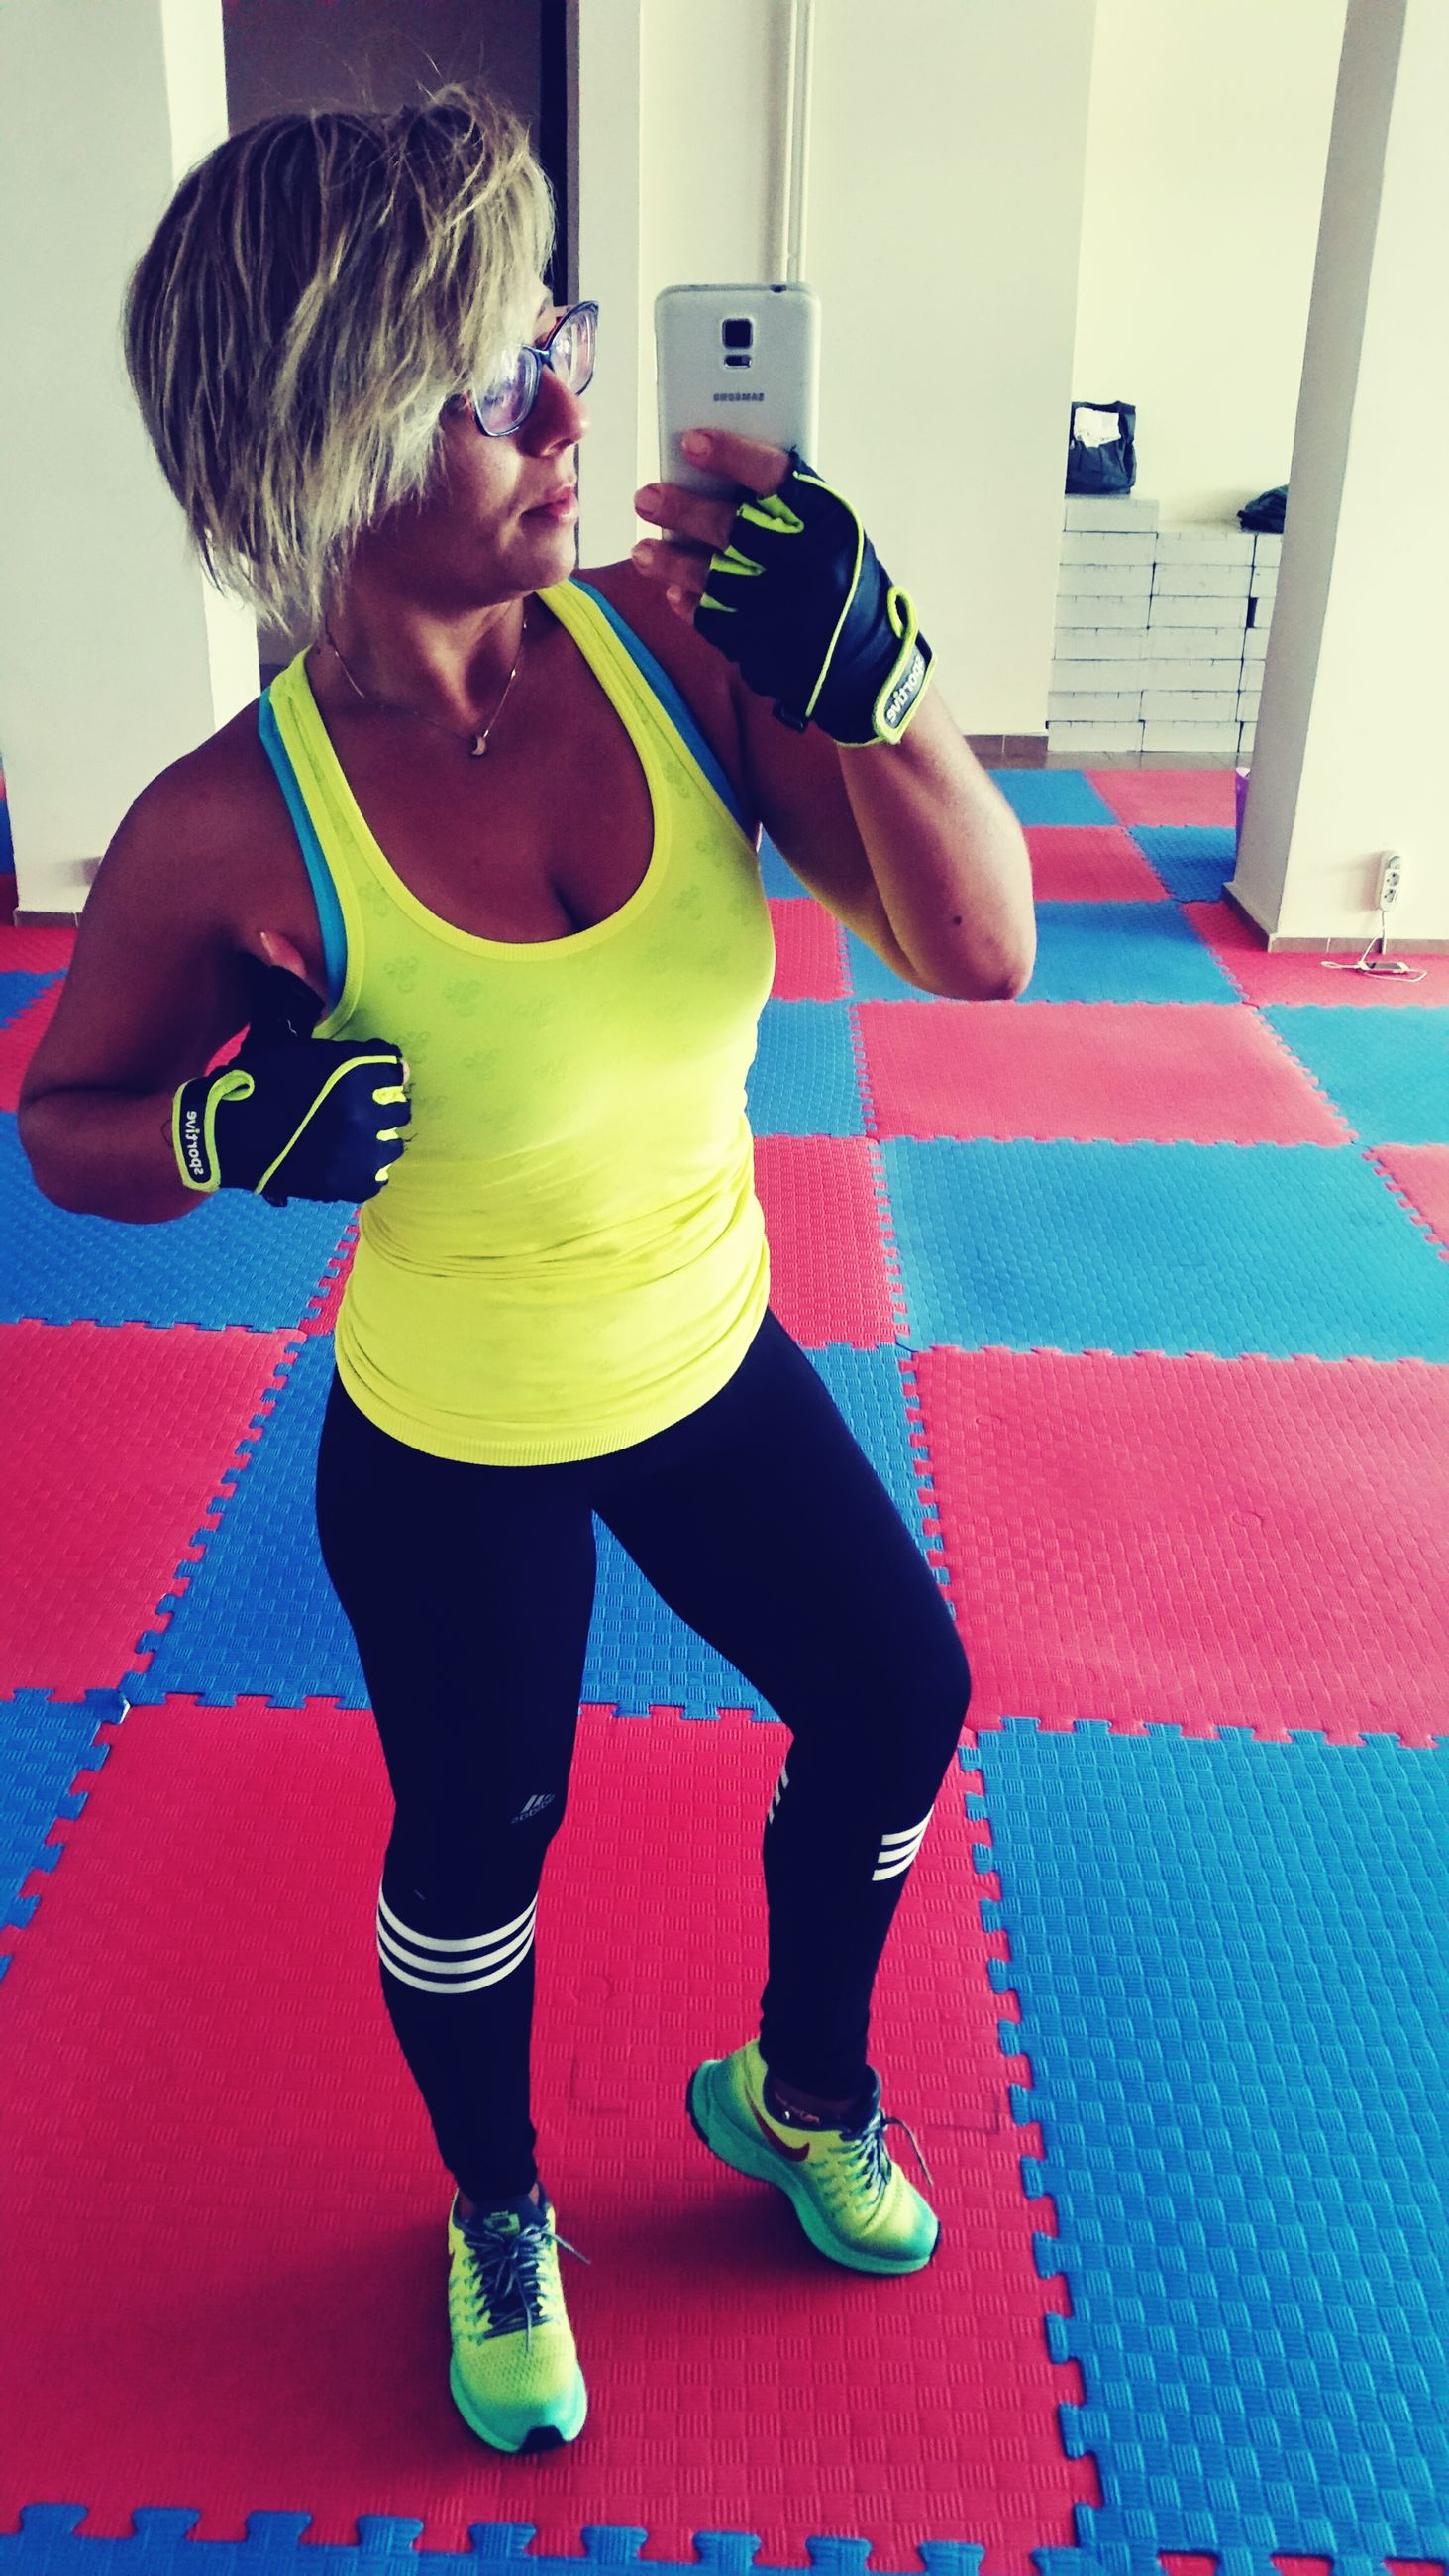 lifestyles, real people, one person, full length, leisure activity, sport, sports clothing, indoors, gym, exercising, concentration, skill, young women, healthy lifestyle, blond hair, young adult, exercise equipment, day, athlete, people